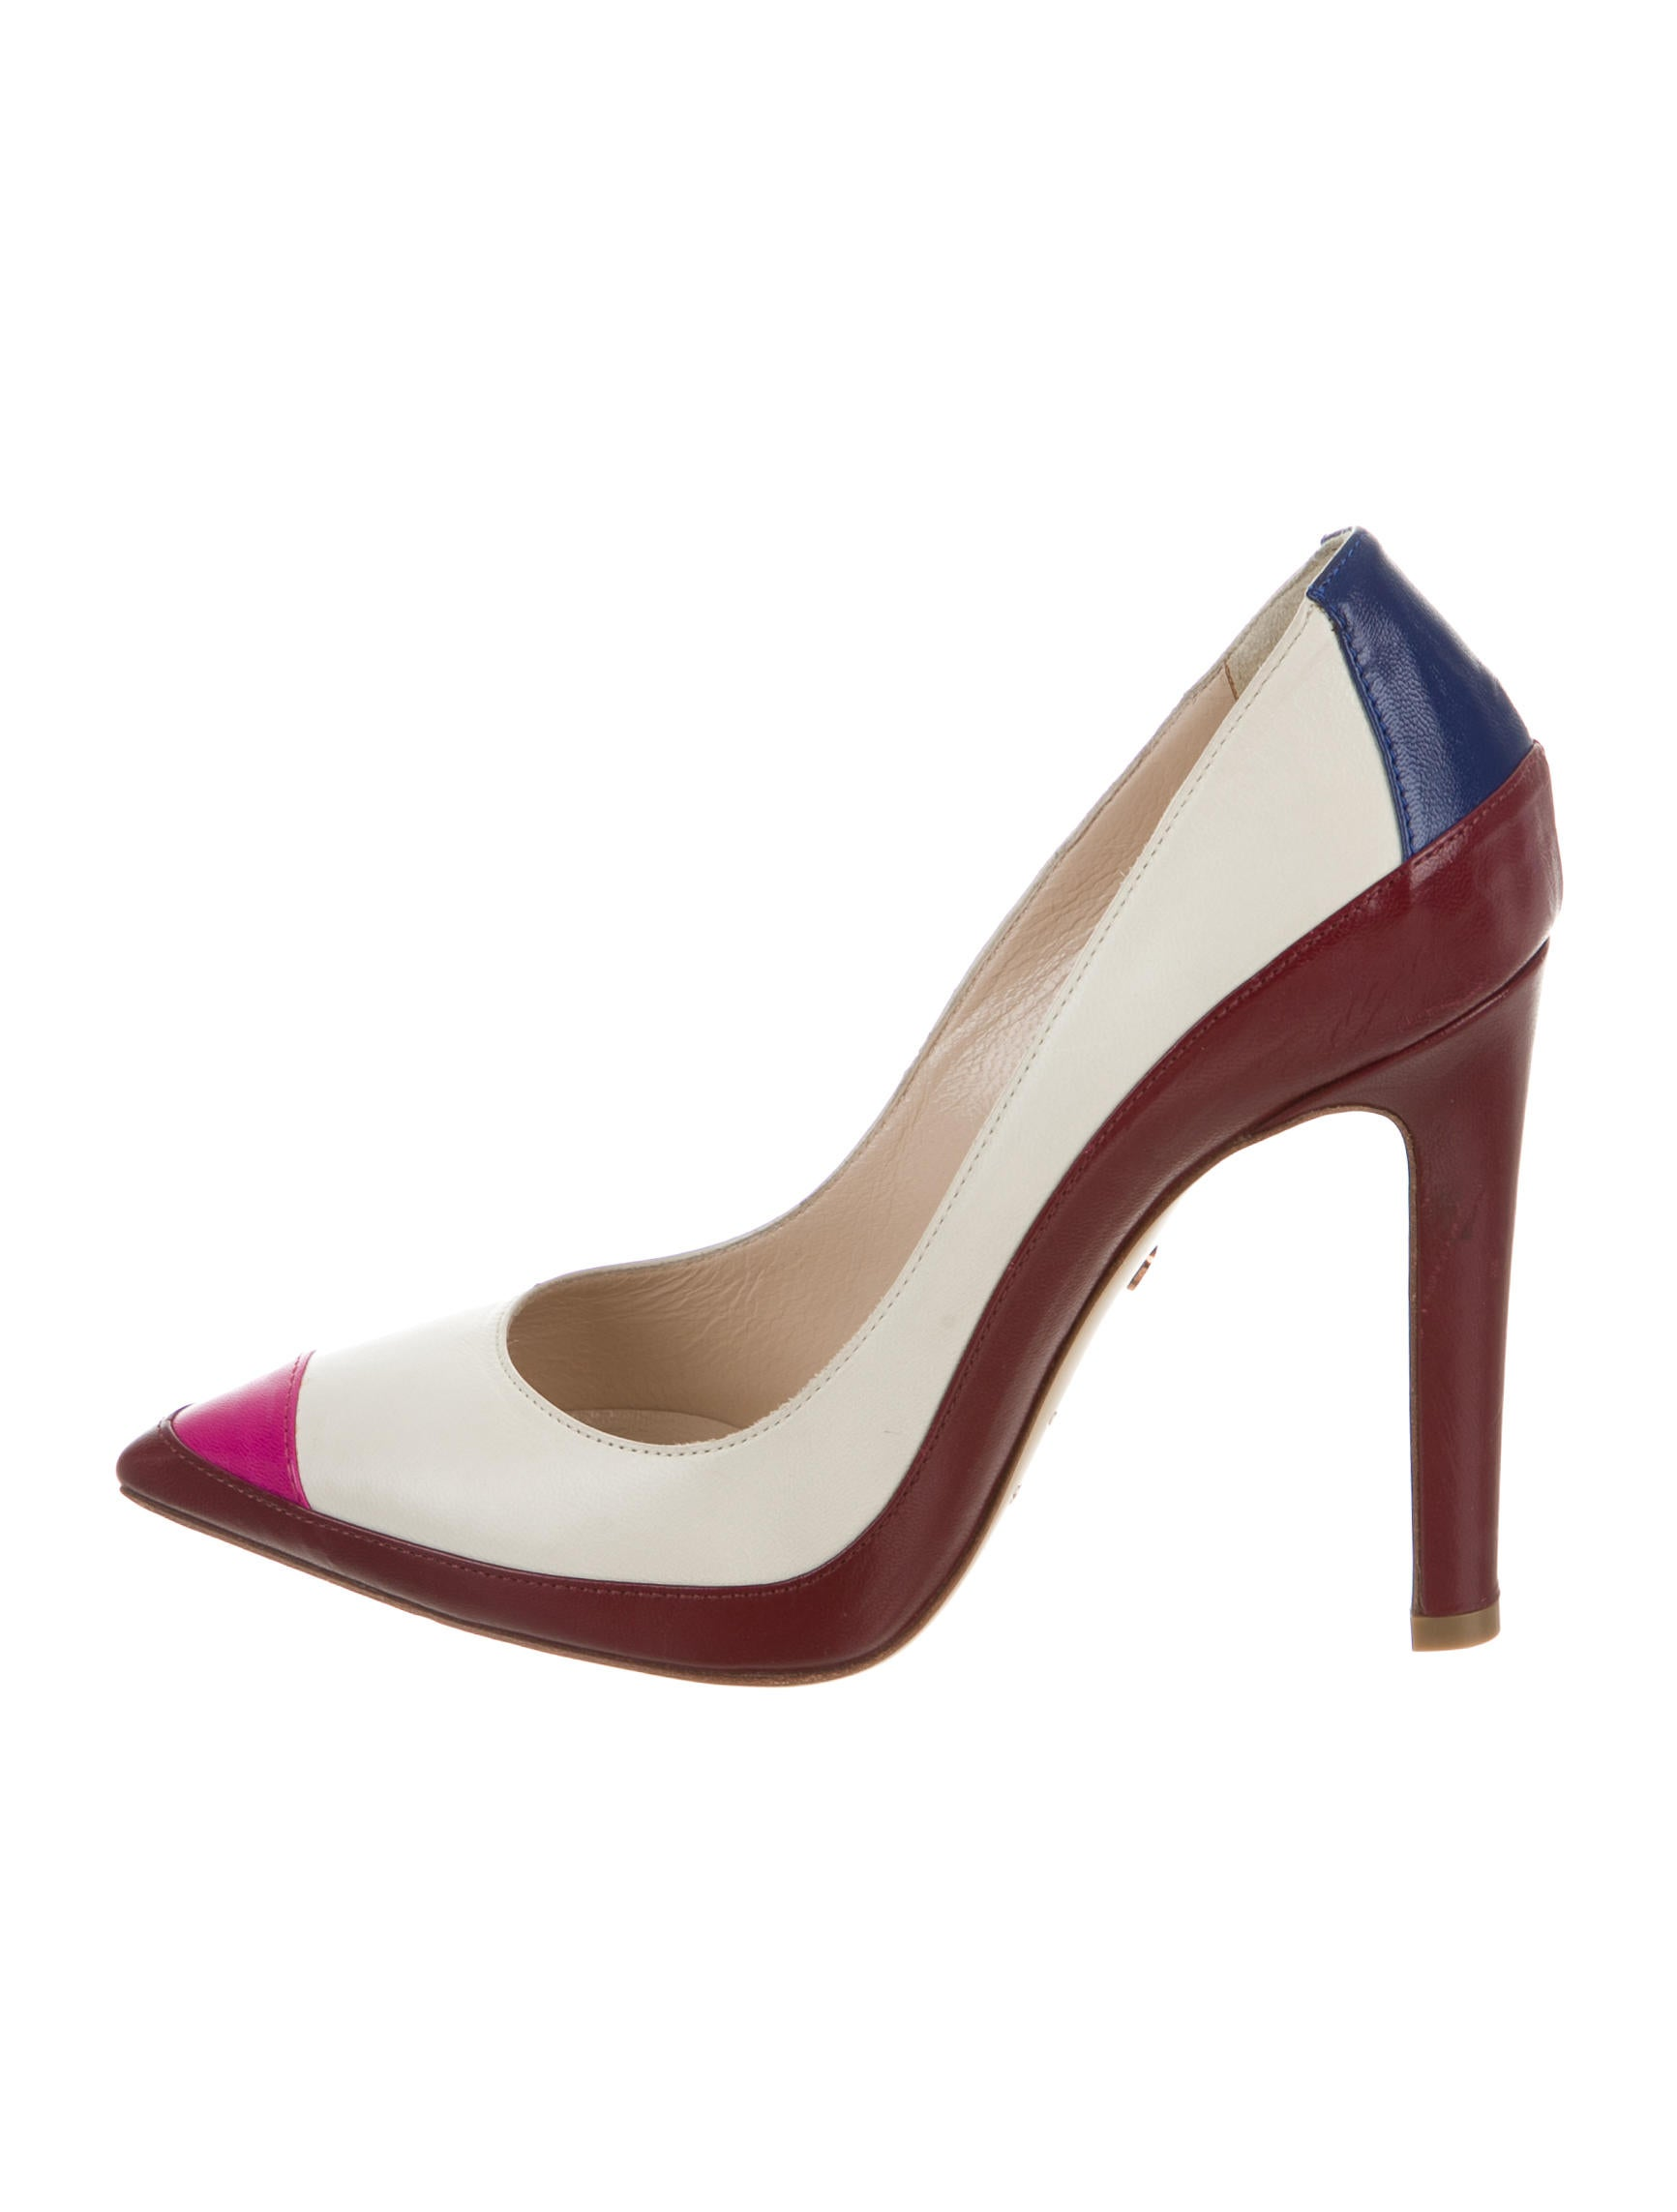 Ruthie Davis Colorblock Peep-Toe Pumps outlet cheap online outlet cost buy cheap clearance clearance new big sale cheap price REjFCl03